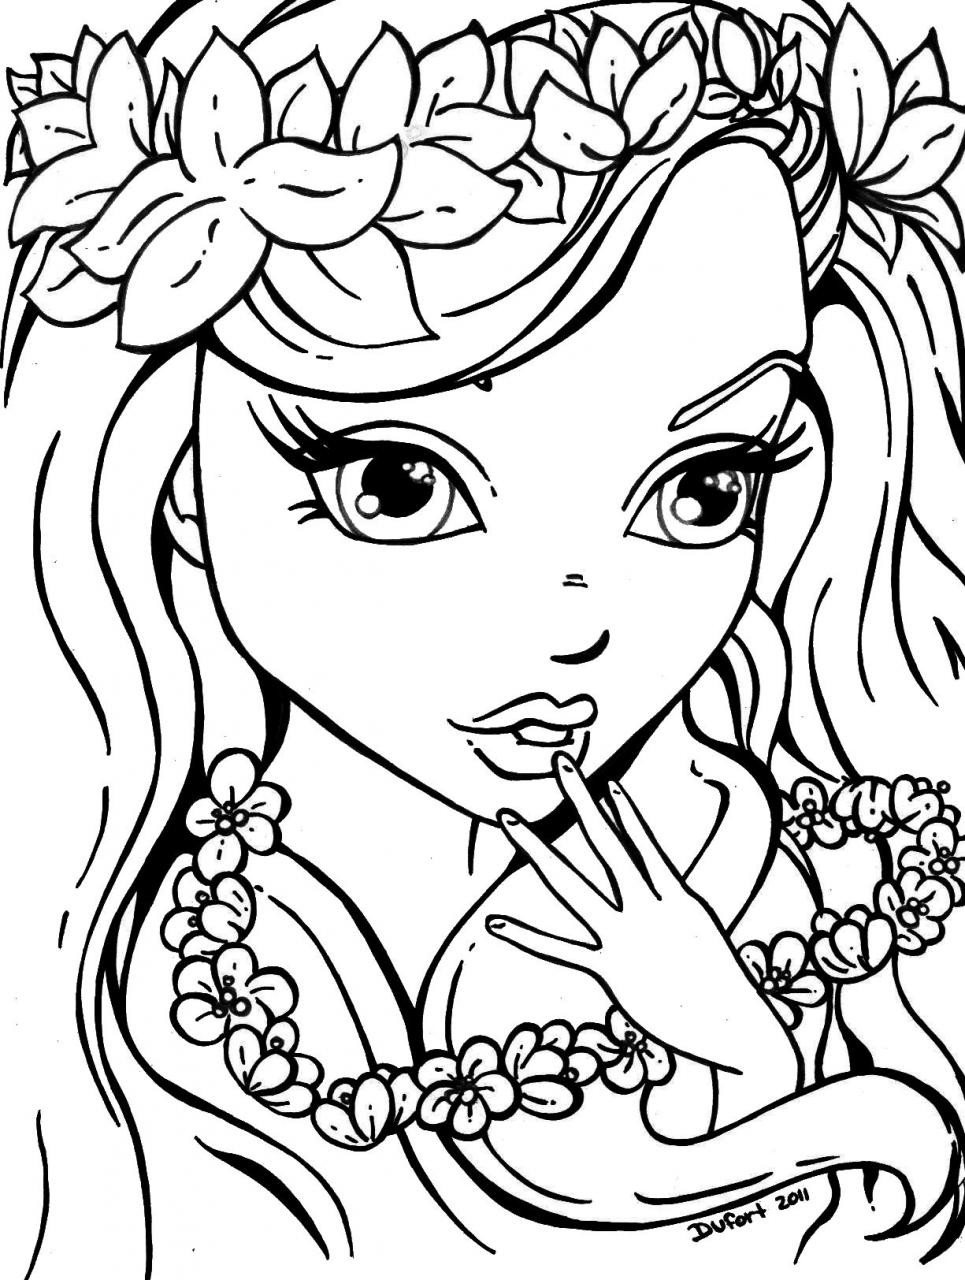 Coloring Sheets For Girls To Prin  printable coloring pages for girls printable